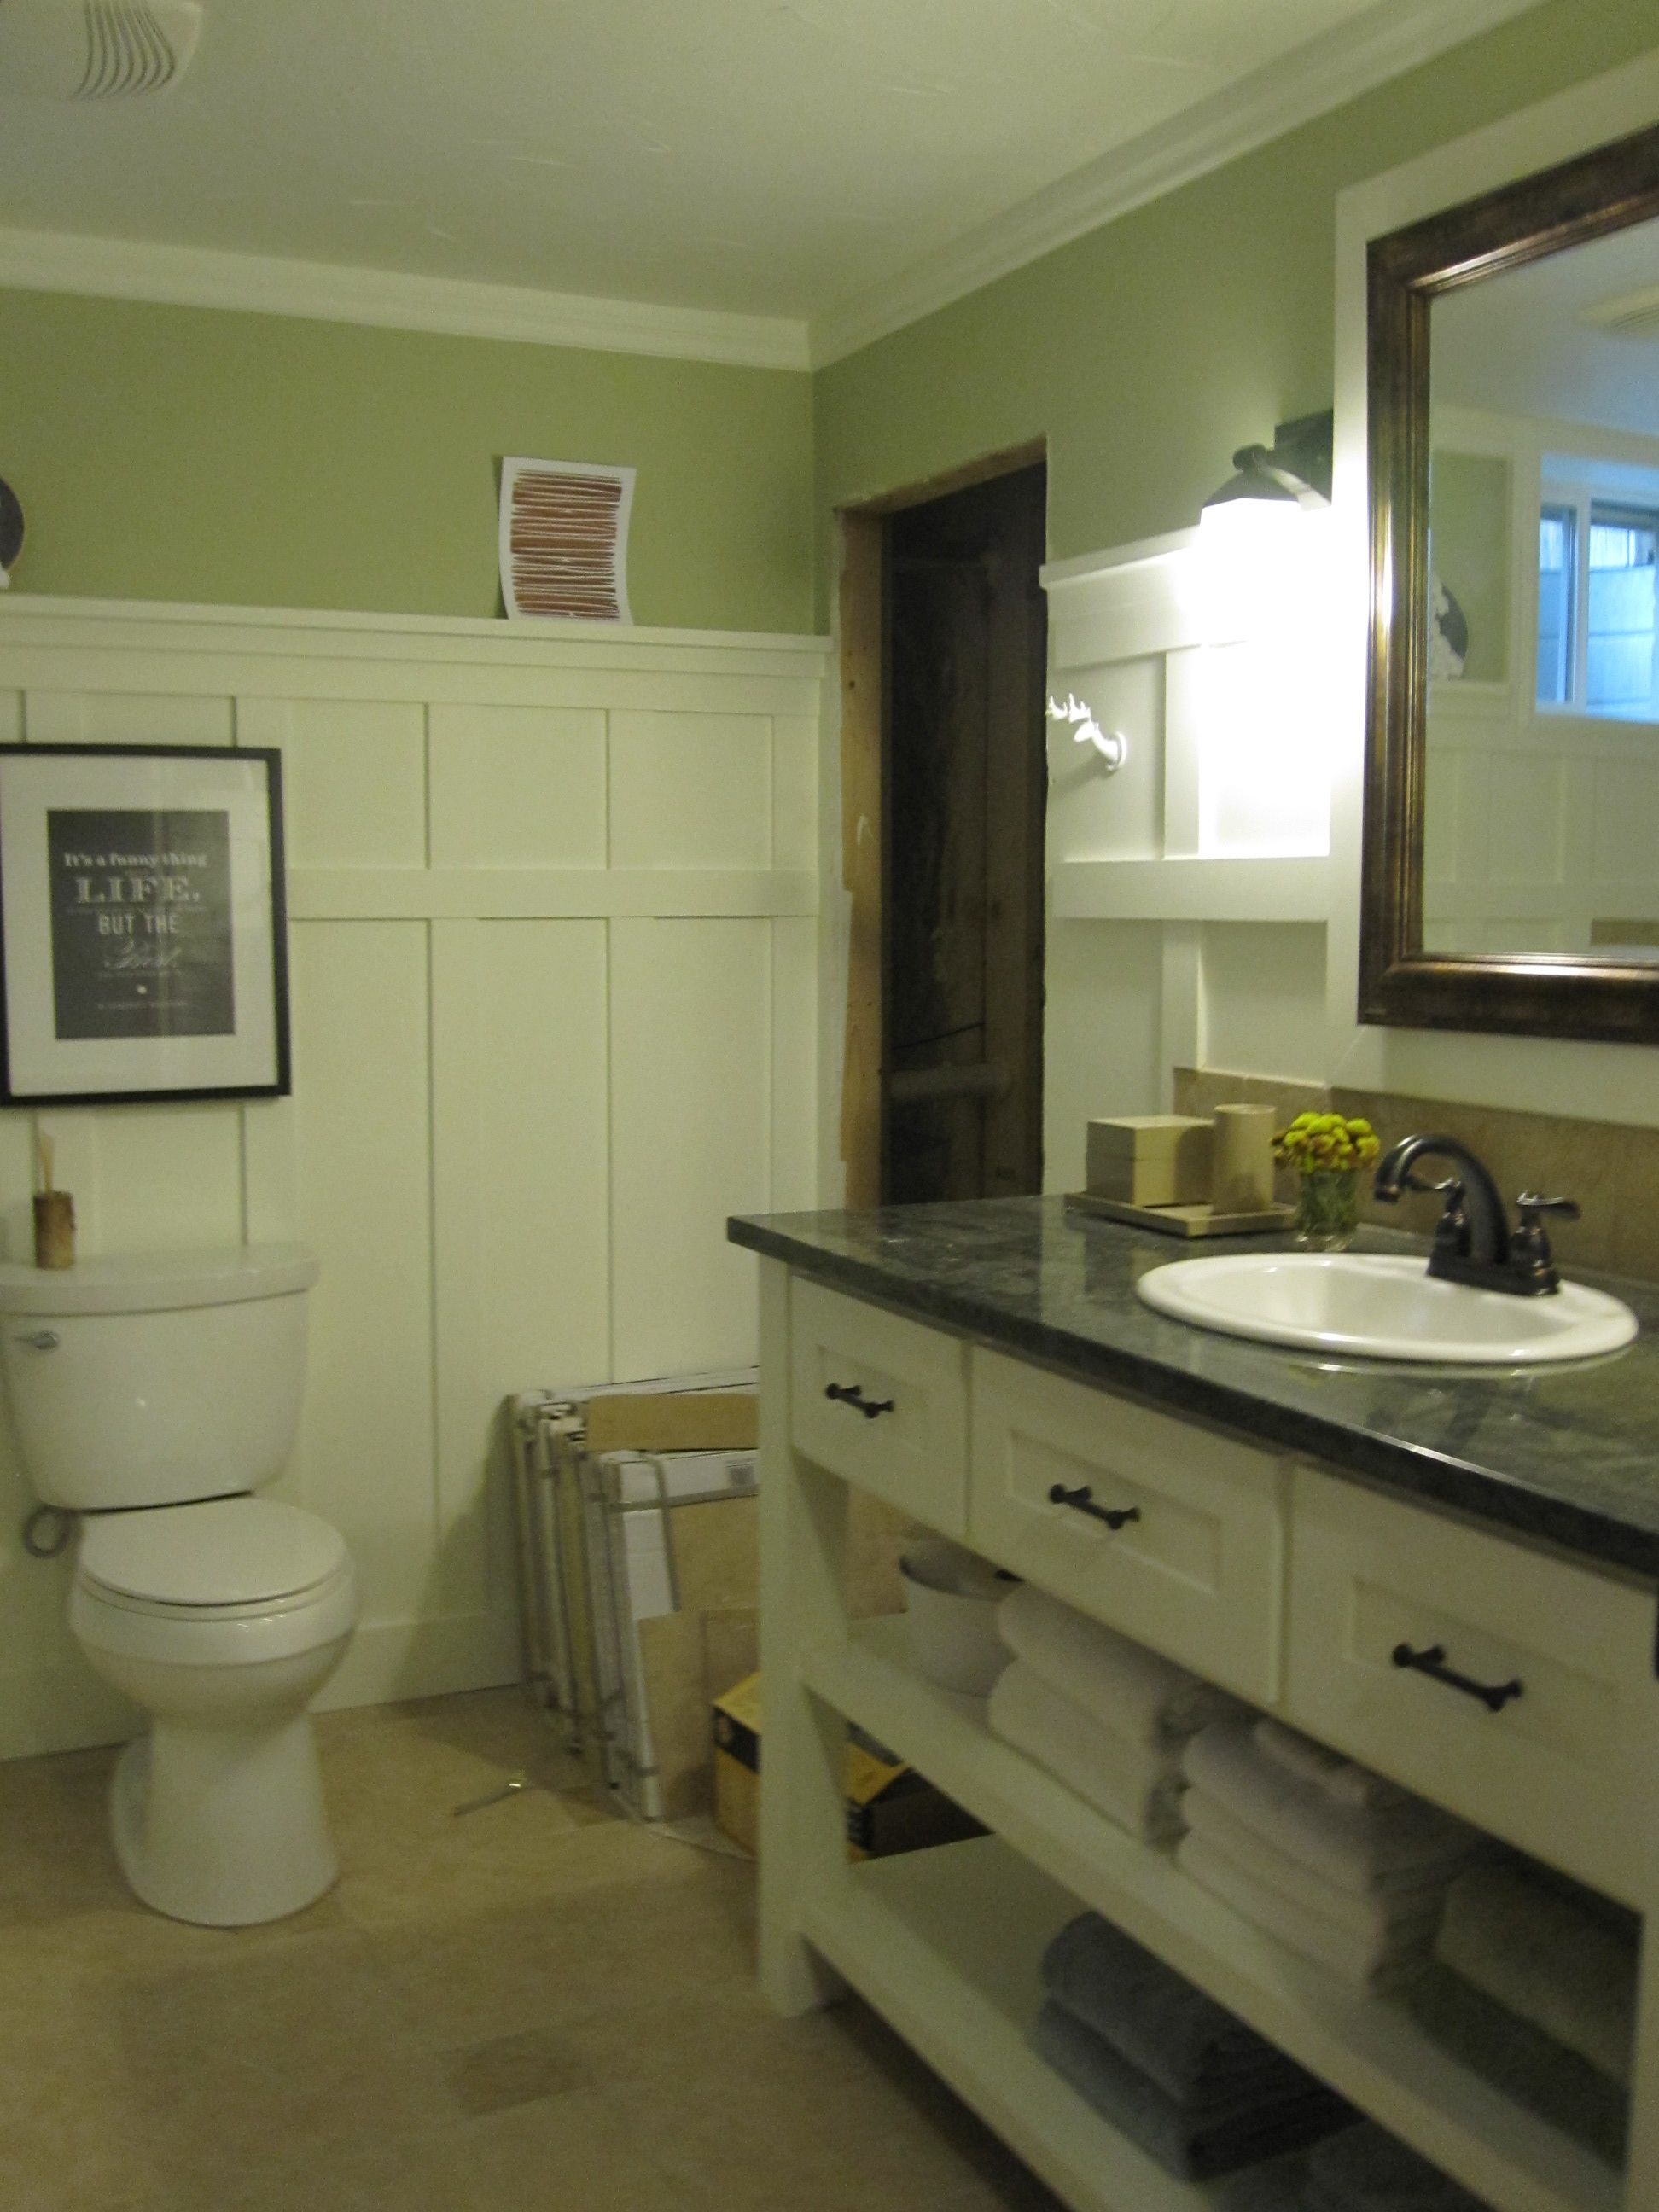 Bathroom cabinet ideas storage open shelving bathroom storage  for the home  pinterest  open